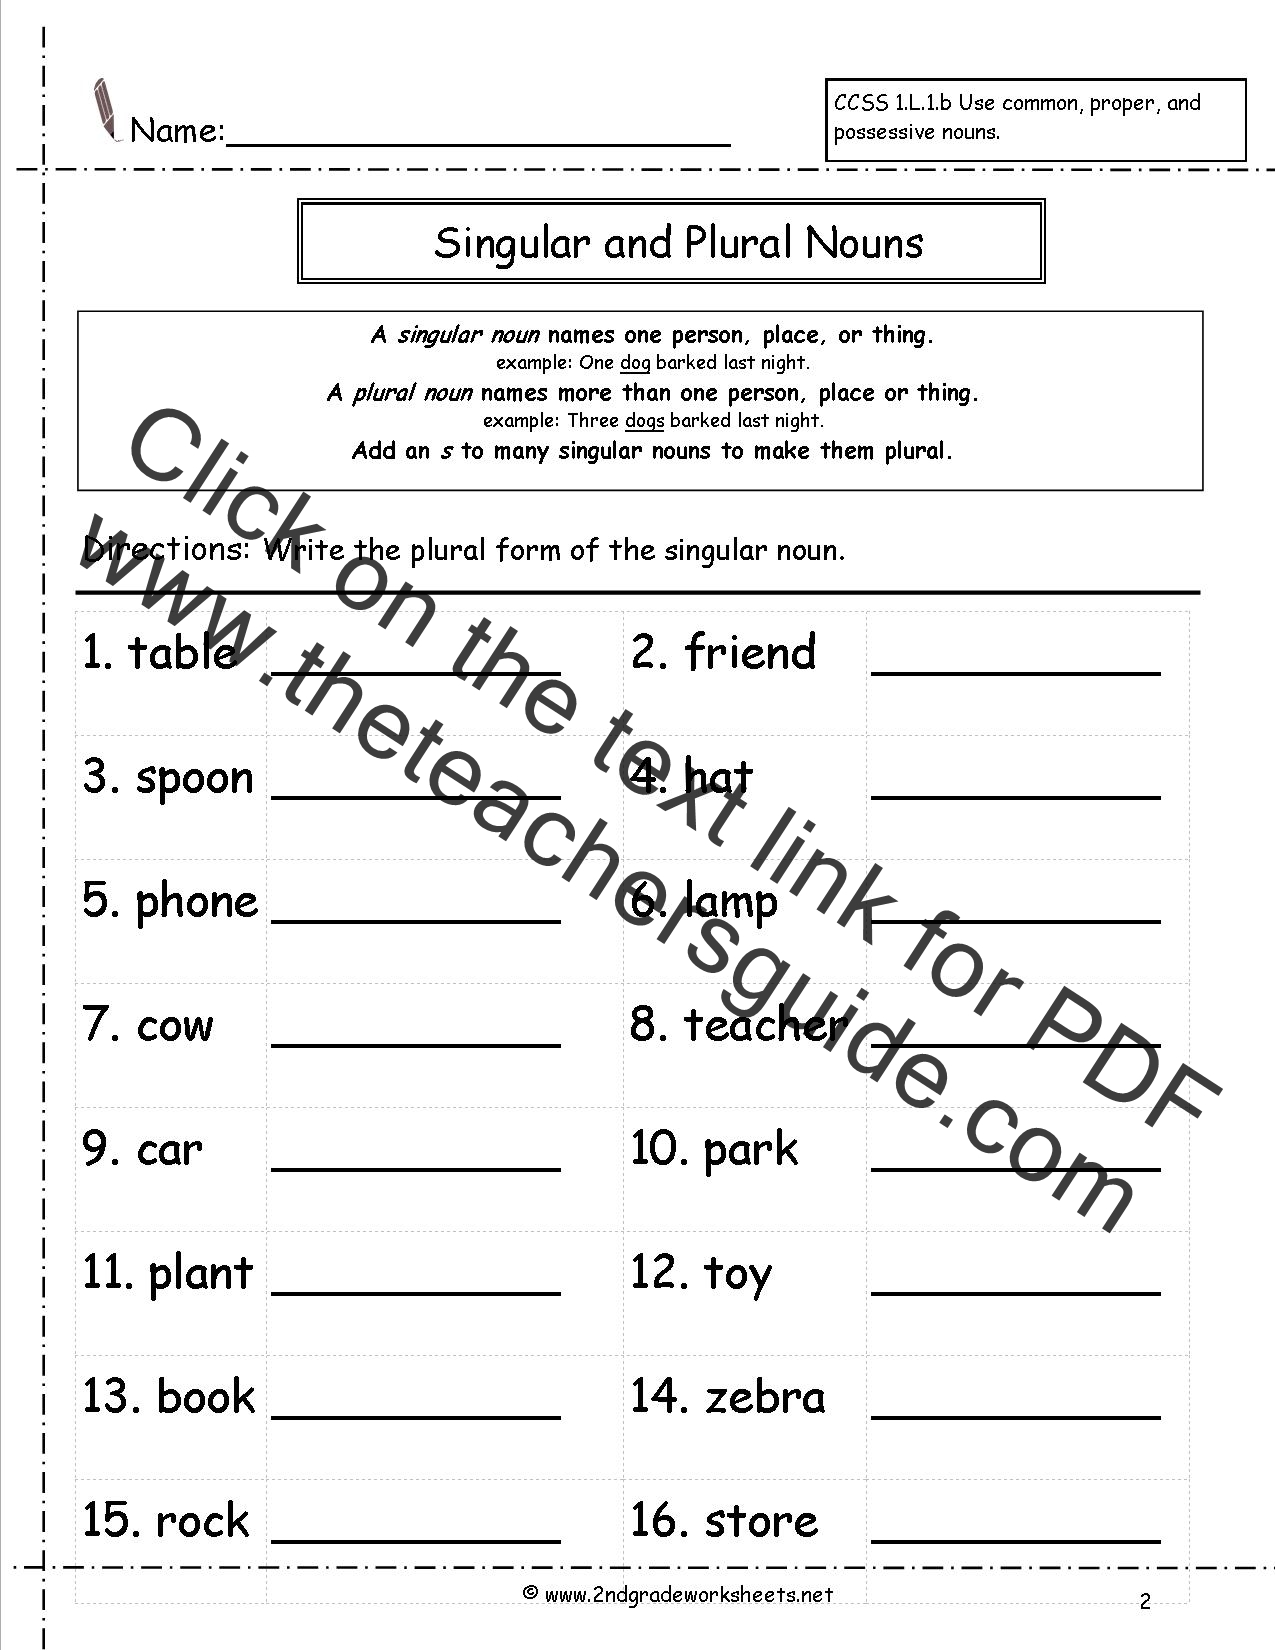 Writing future tense of verb worksheet turtle diary - Pronouns Worksheets Furthermore Plural Possessive Nouns Worksheets